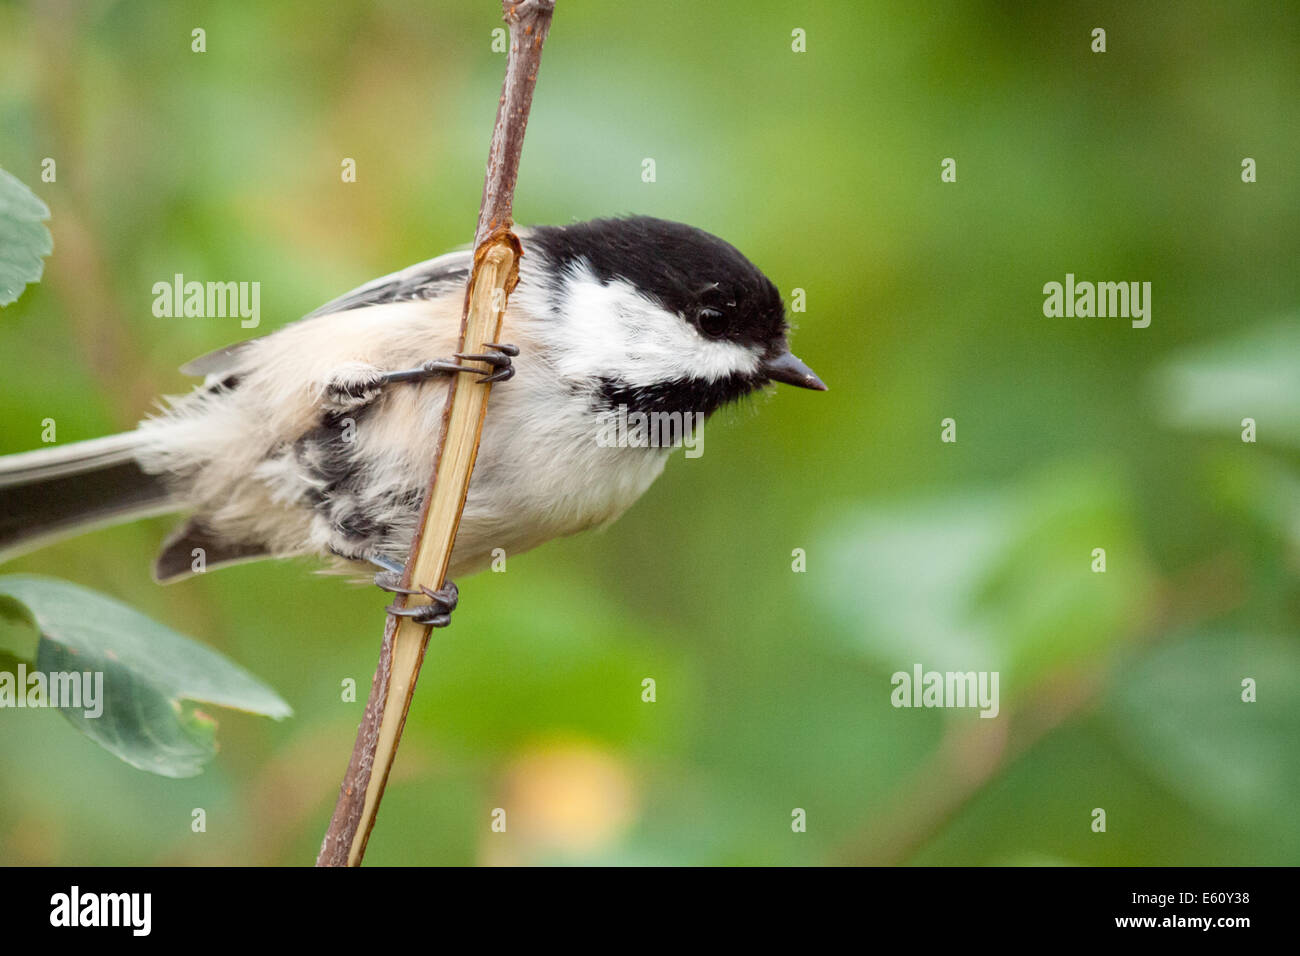 An acrobatic Black-capped chickadee (Poecile atricapillus) in summer. Edmonton, Canada. - Stock Image